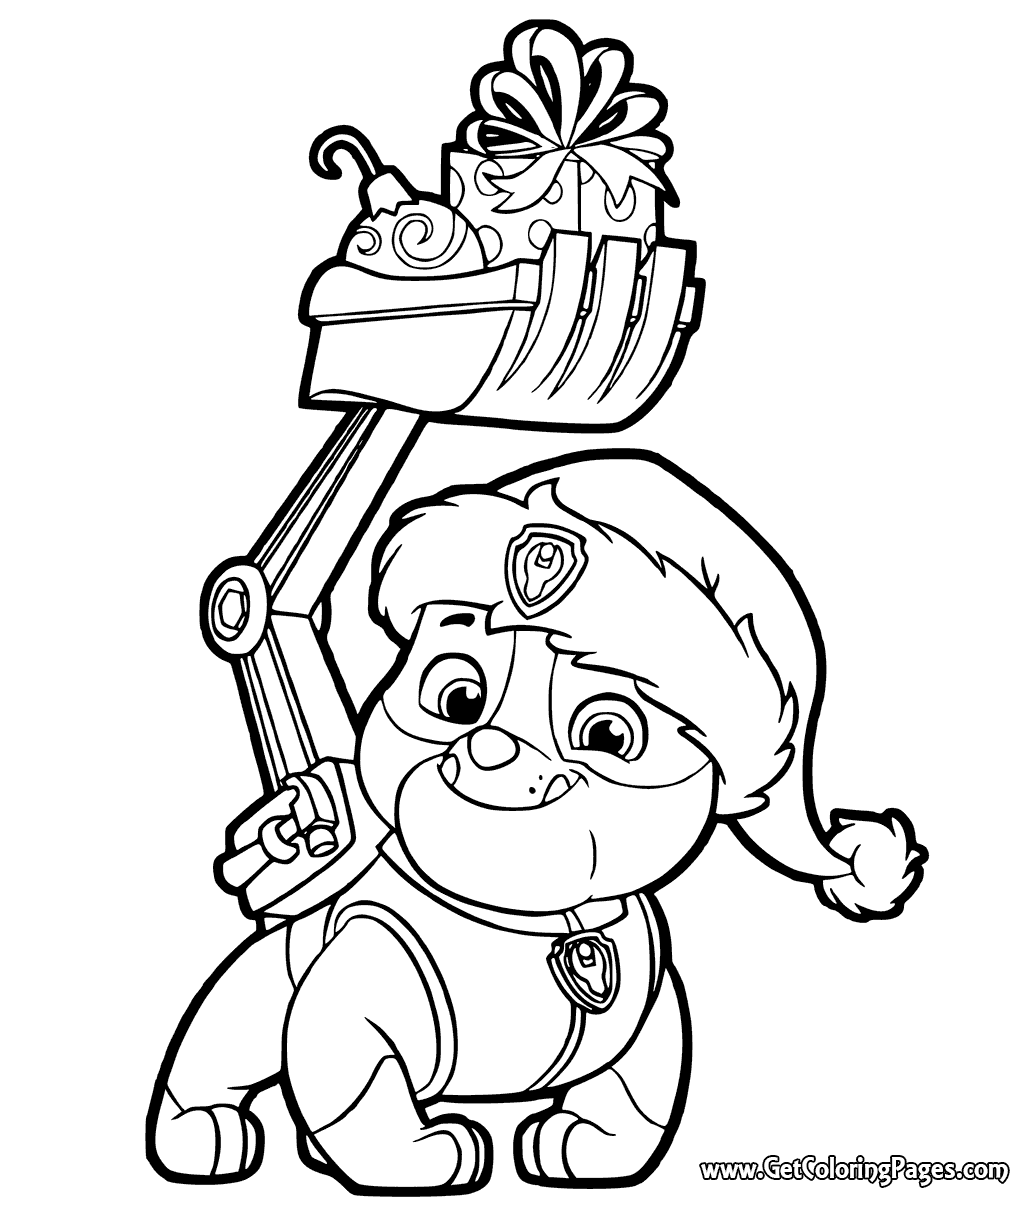 1024x1212 Wonderful Nickjr Com Coloring Pages Challe